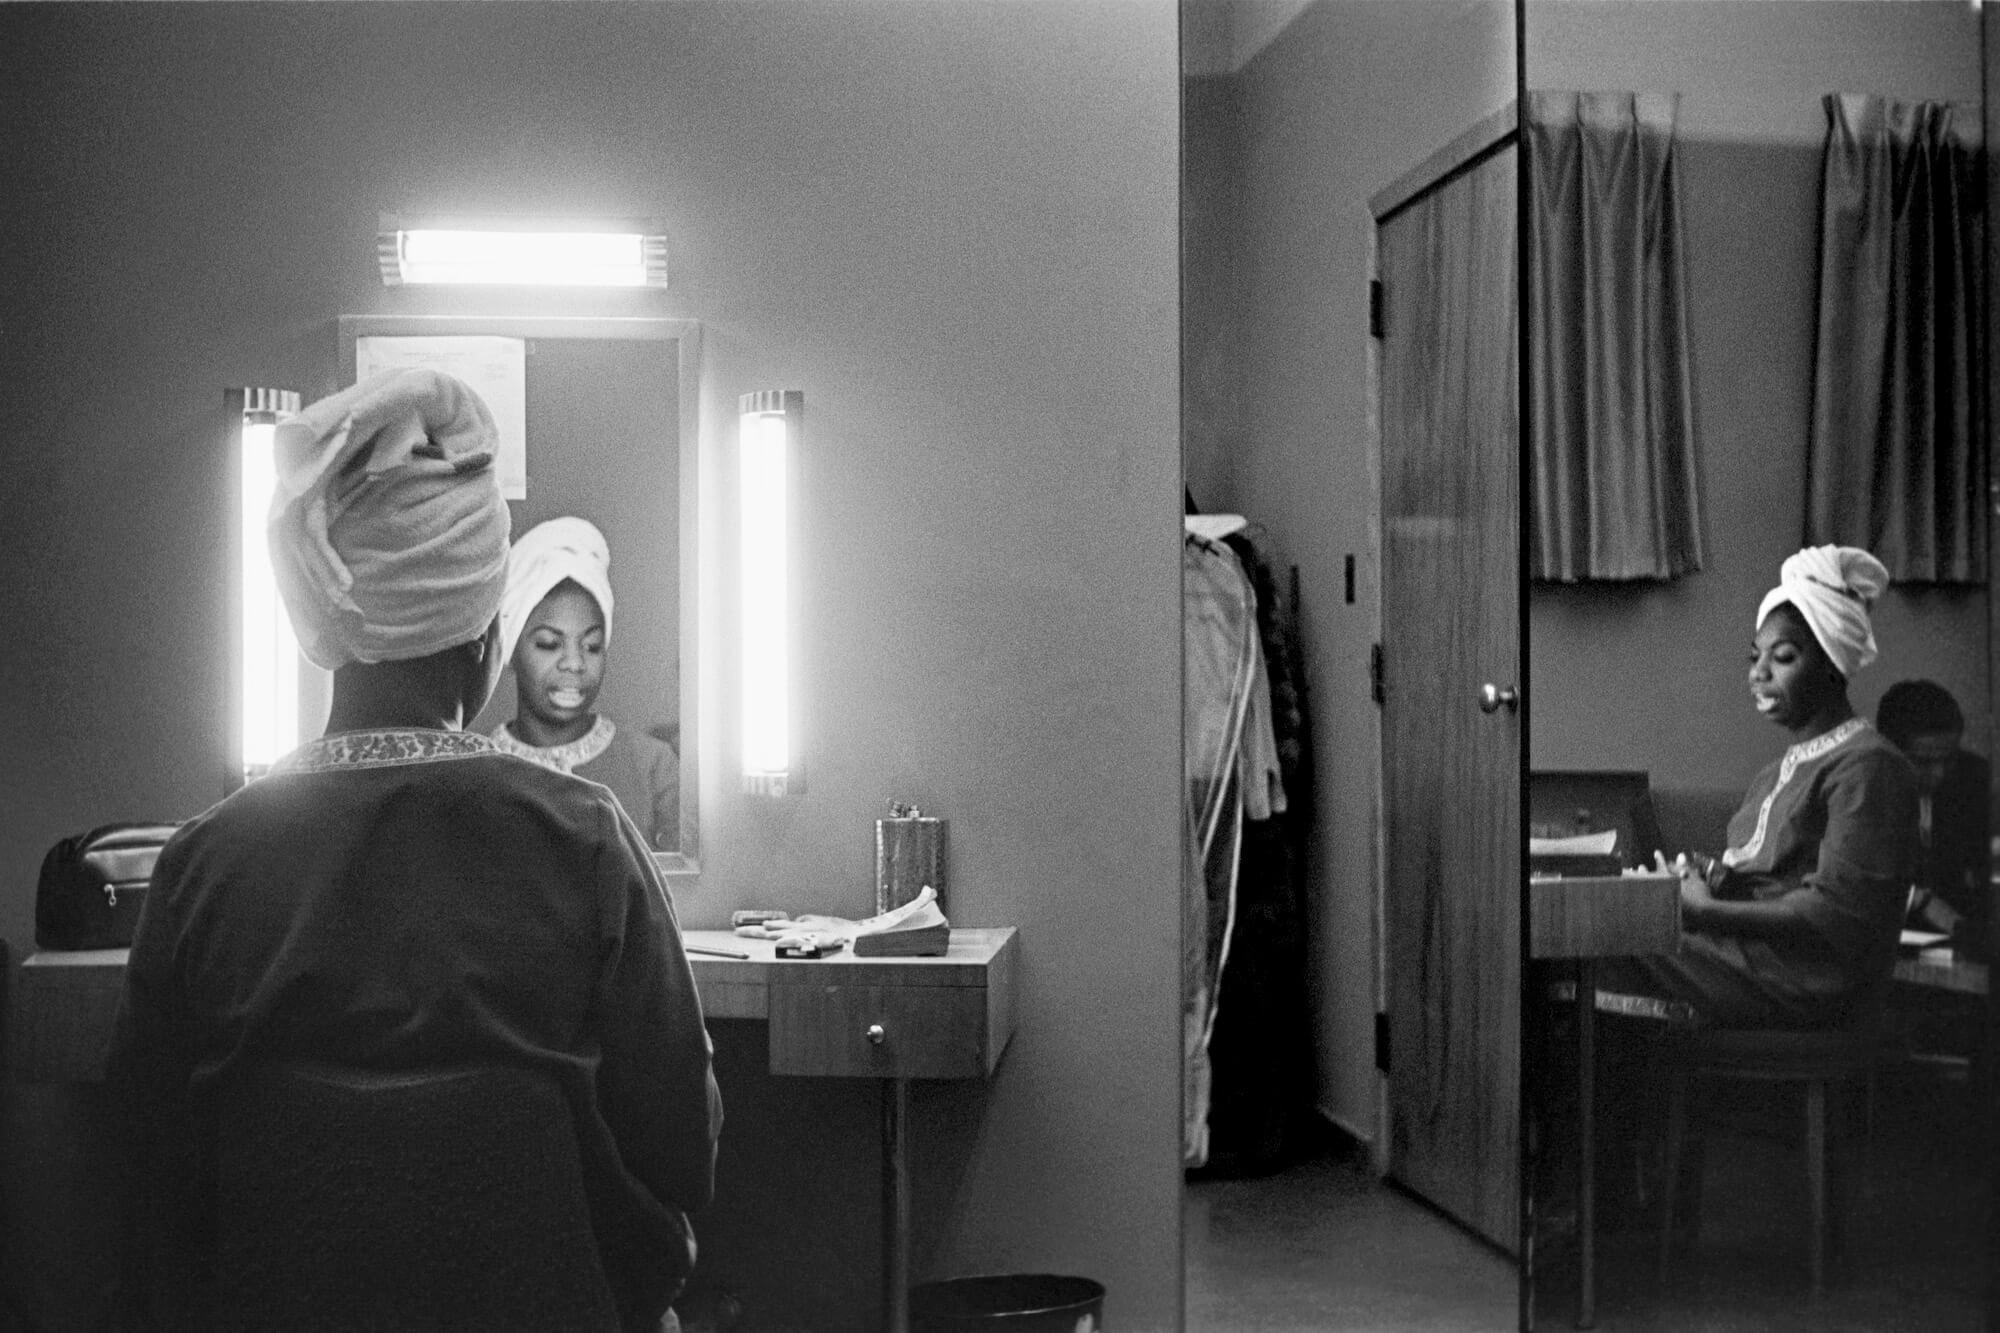 Nina Simone in a Motel Room in Buffalo, New York, 1964